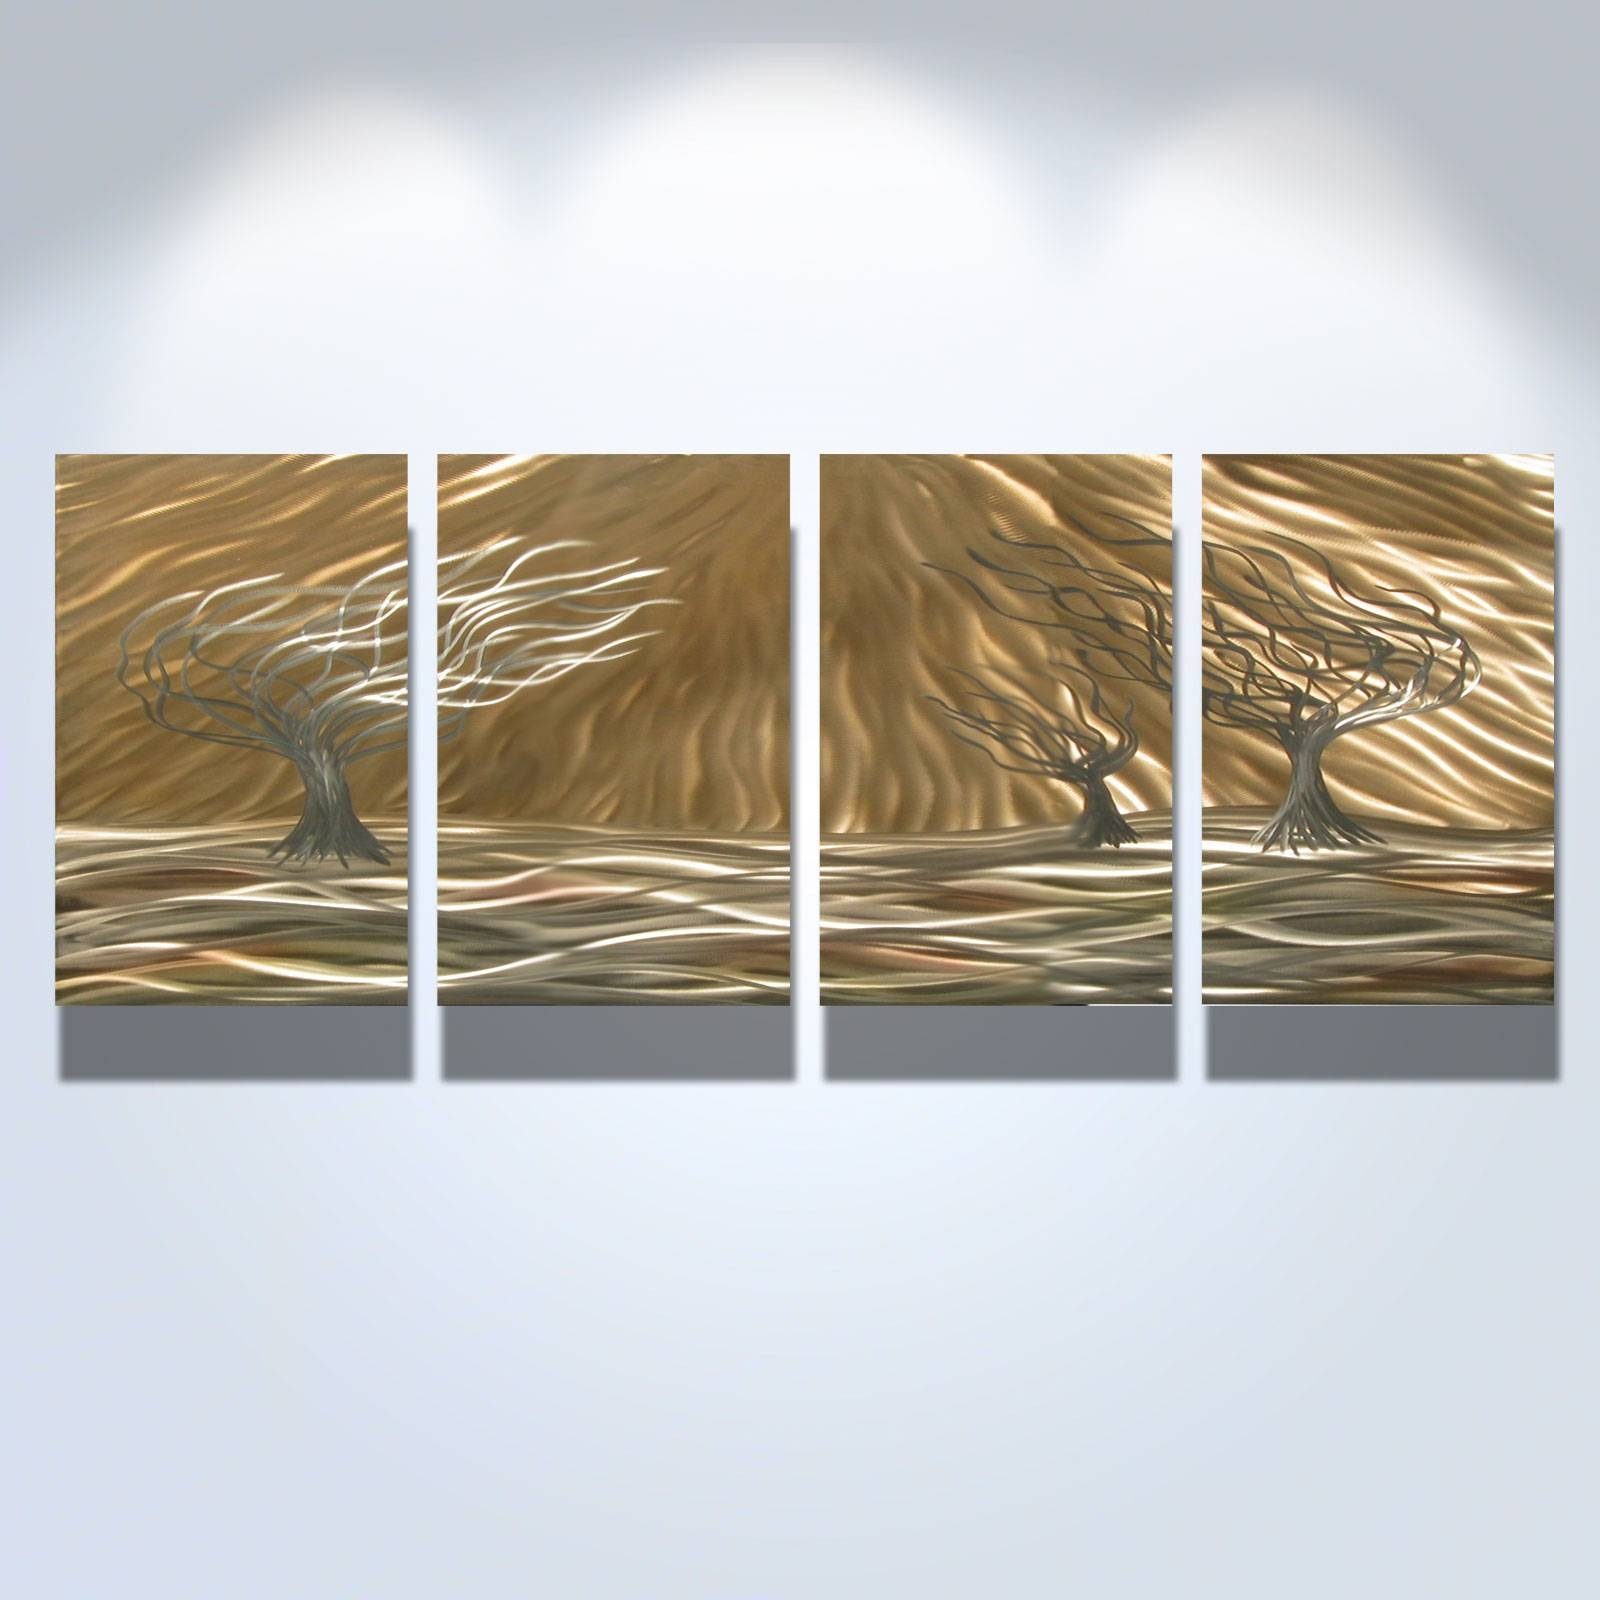 3 Trees 4 Panel – Abstract Metal Wall Art Contemporary Modern Regarding Recent Large Abstract Metal Wall Art (Gallery 20 of 20)